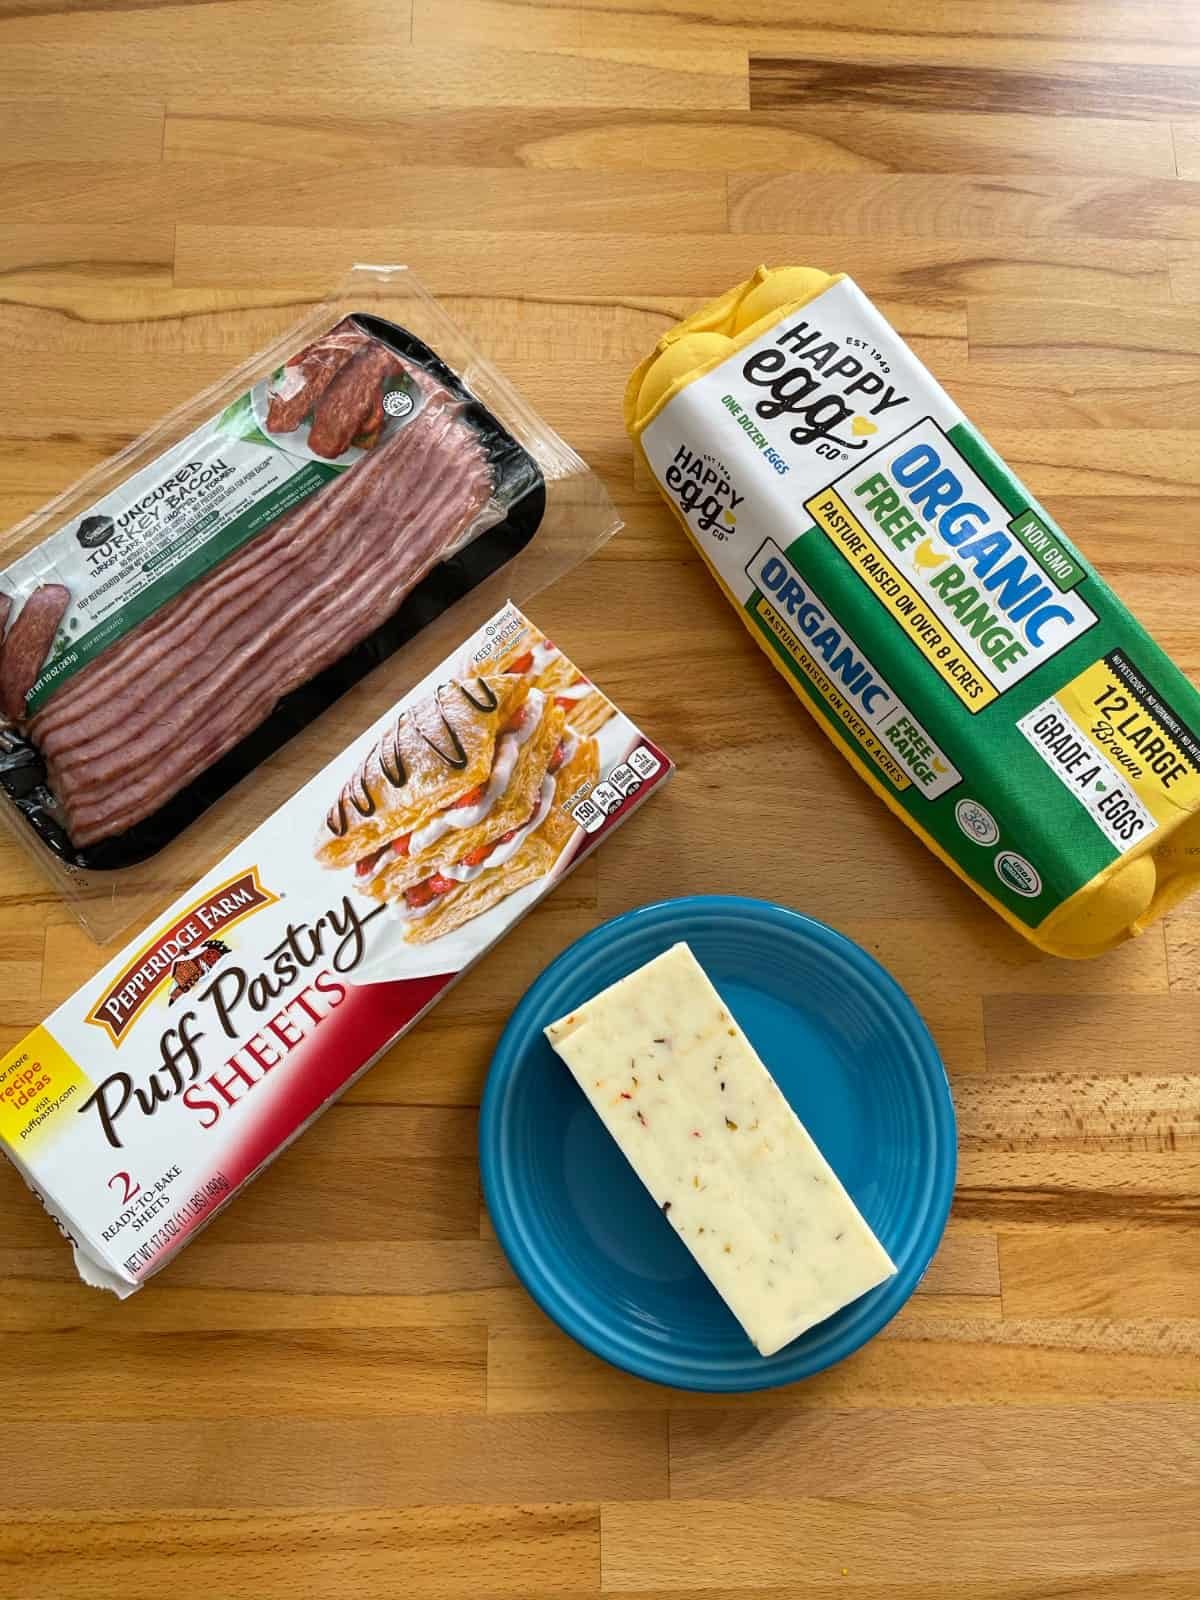 Ingredients for making breakfast pie including turkey bacon, puff pastry sheets, carton of eggs and pepper jack cheese on wood table.